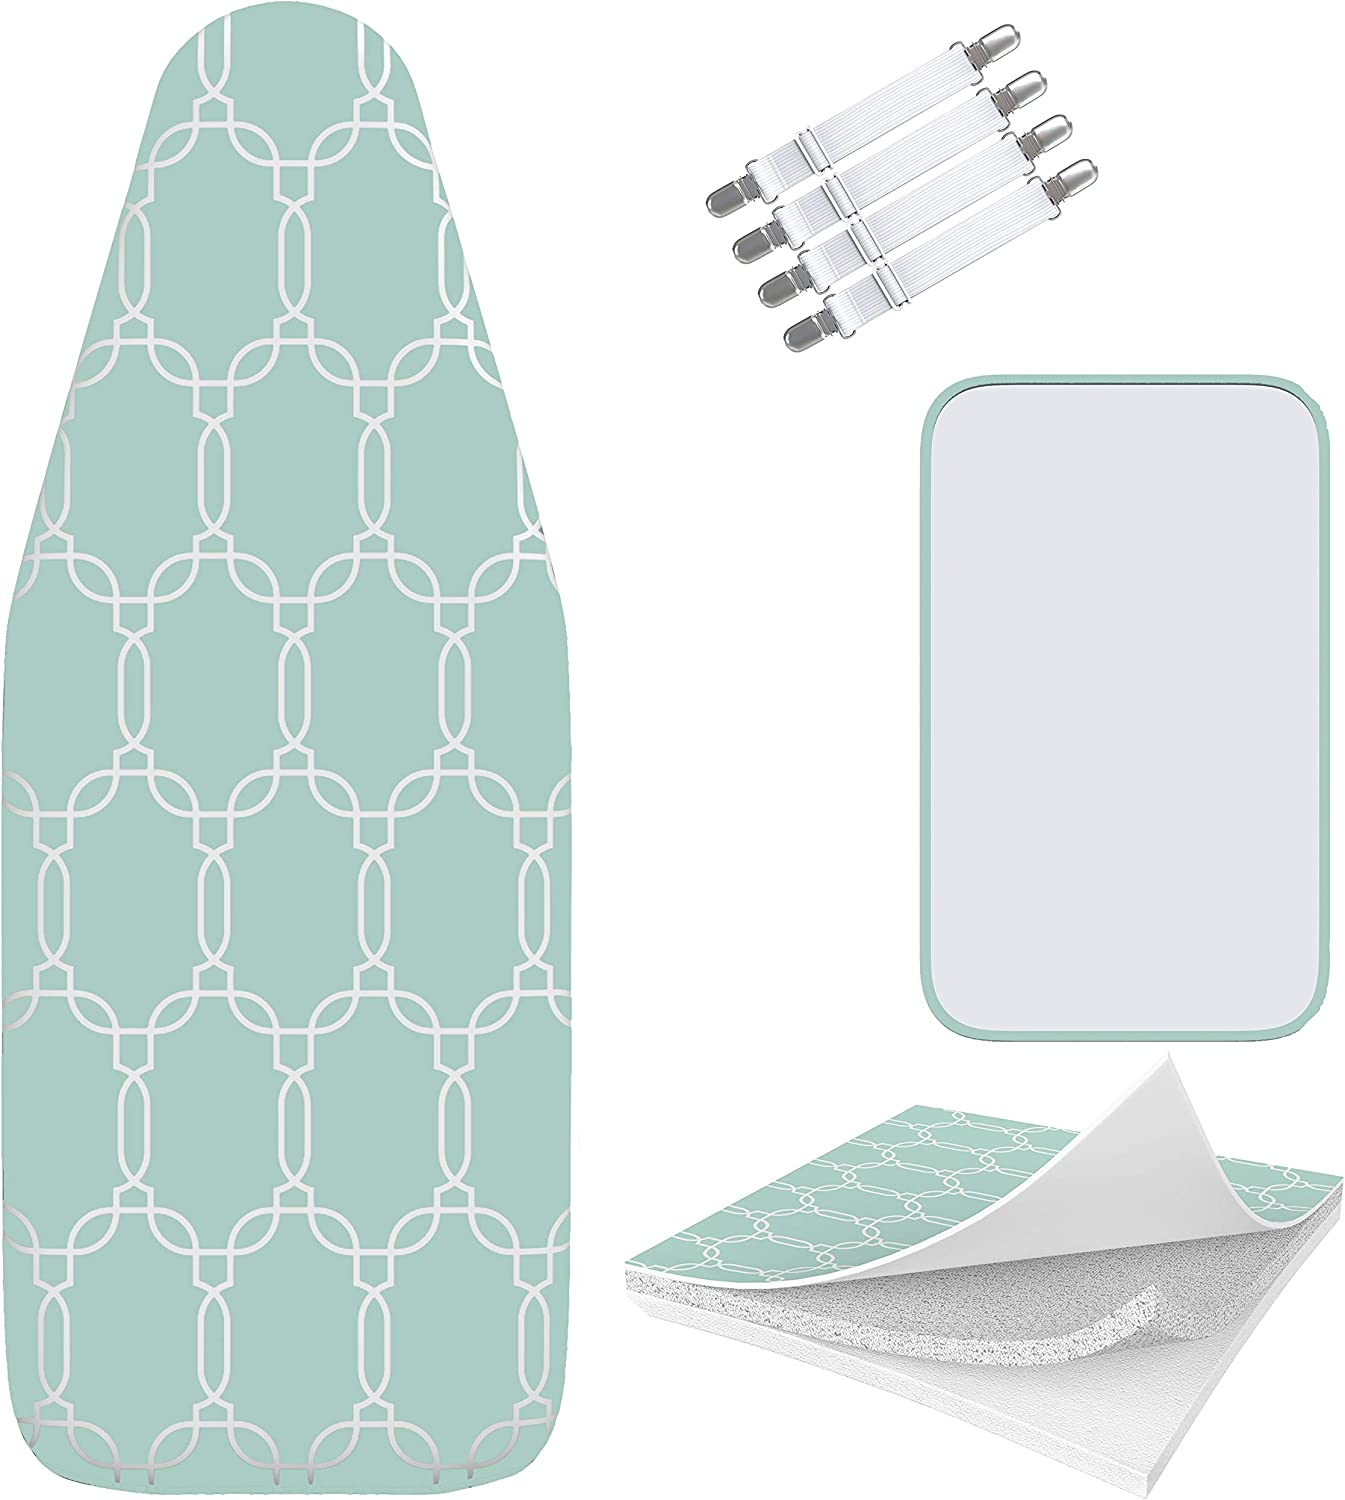 Amazon Com Balffor Silicone Wider Ironing Board Cover And Pad Scorch Proof Trifusion Iron Board Cover White Green With Bonus Adjustable Fasteners And Protective Mesh Geometric Green 18 X 49 Home